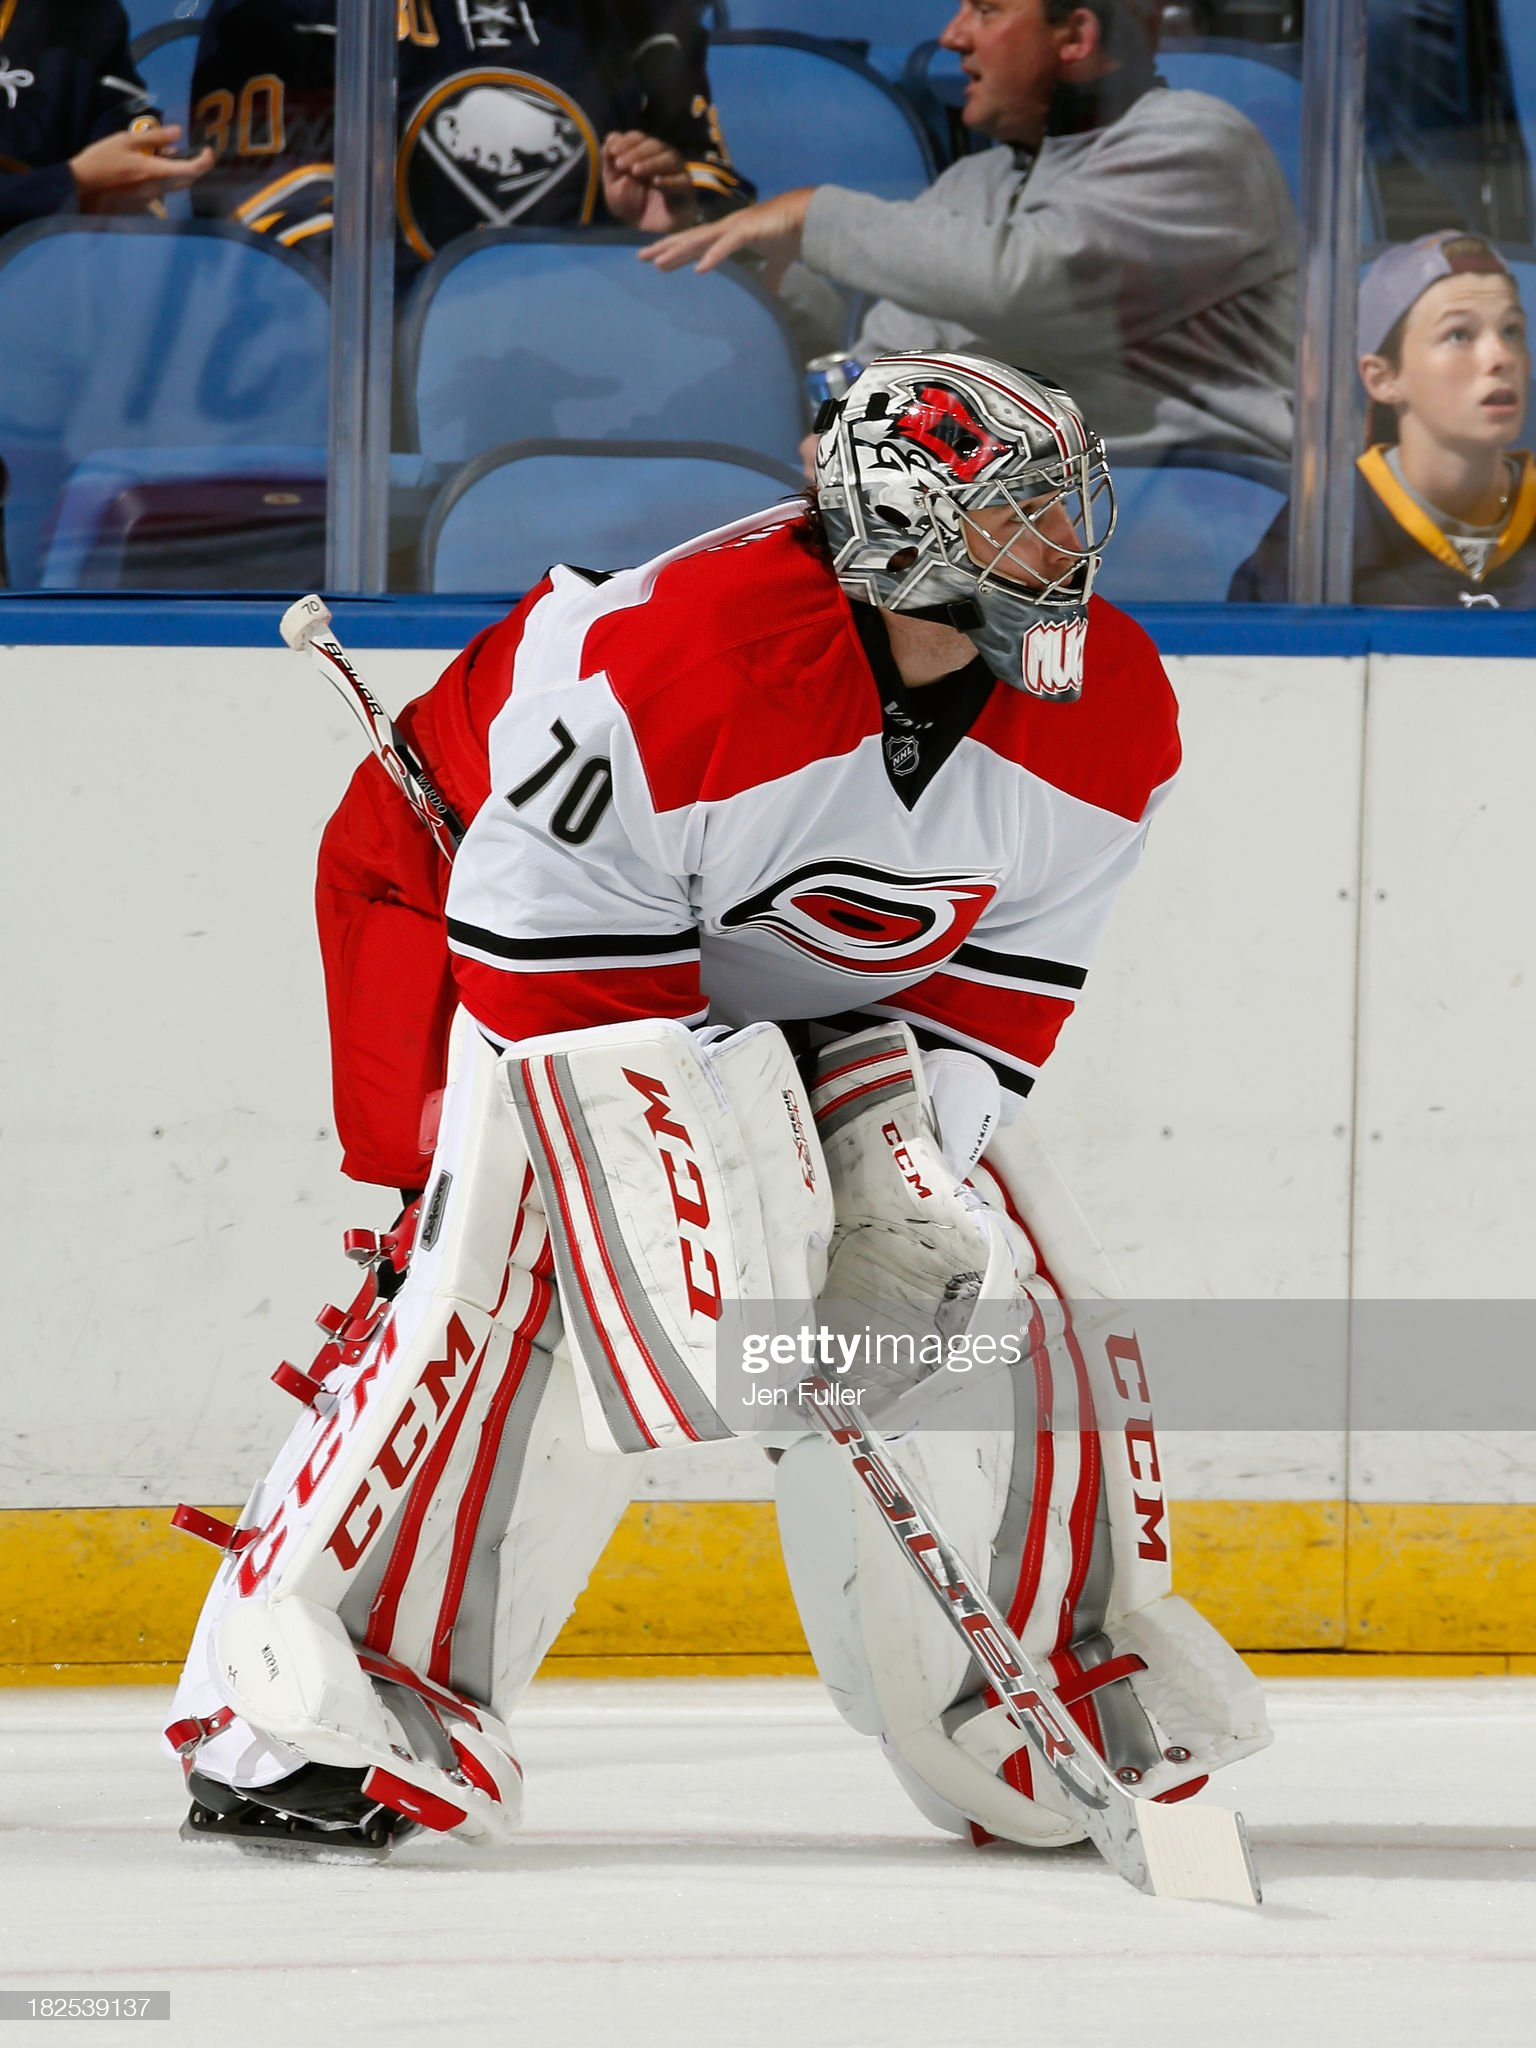 mike-murphy-of-the-carolina-hurricanes-w